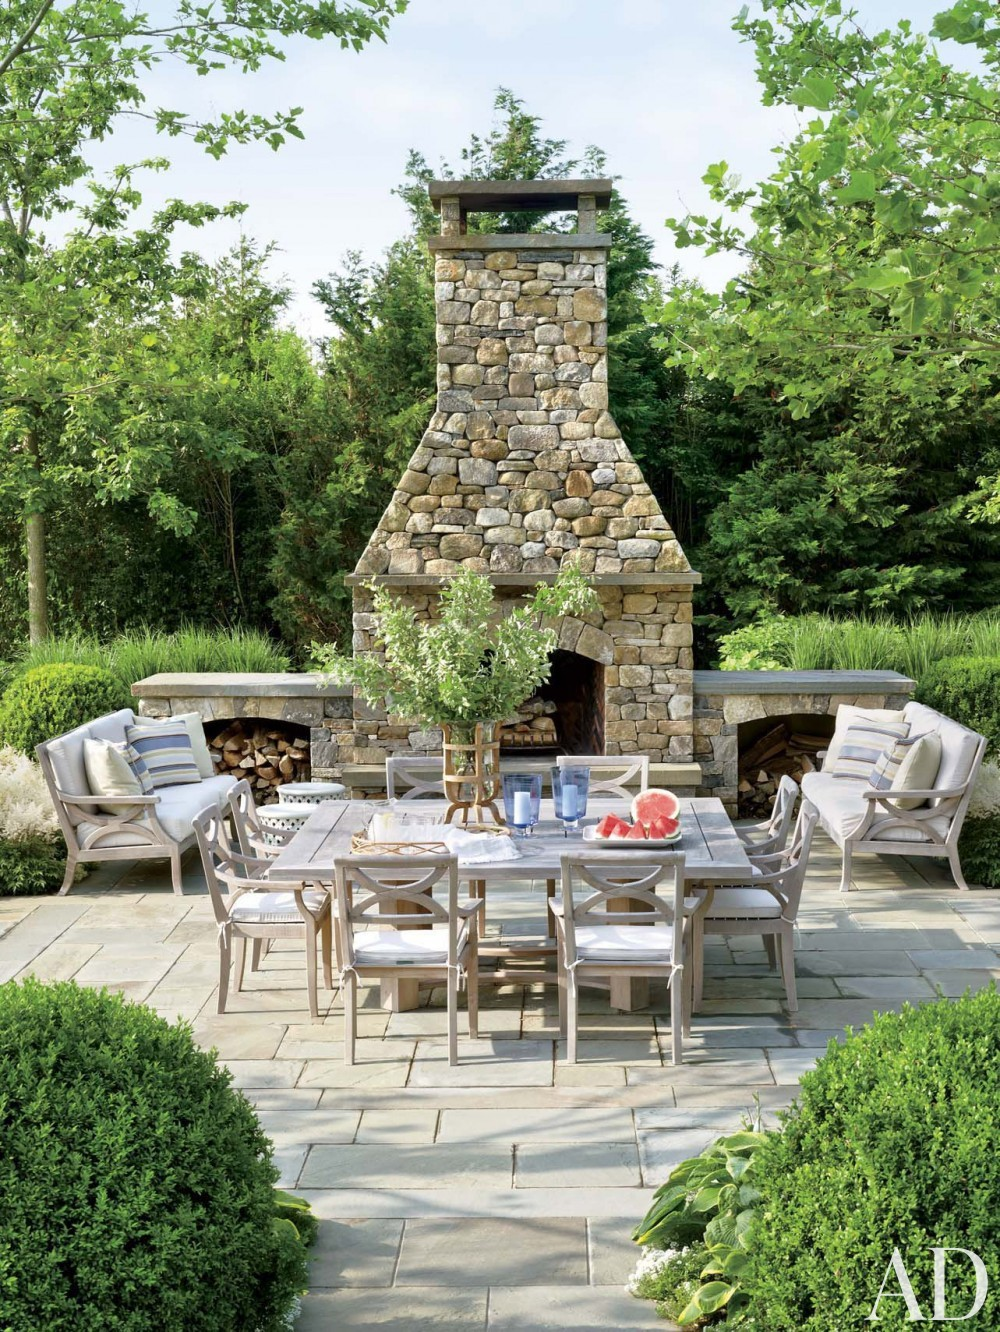 Contemporary Outdoor Space by Carrier and Company Interiors and John David Rose in Southampton, New York